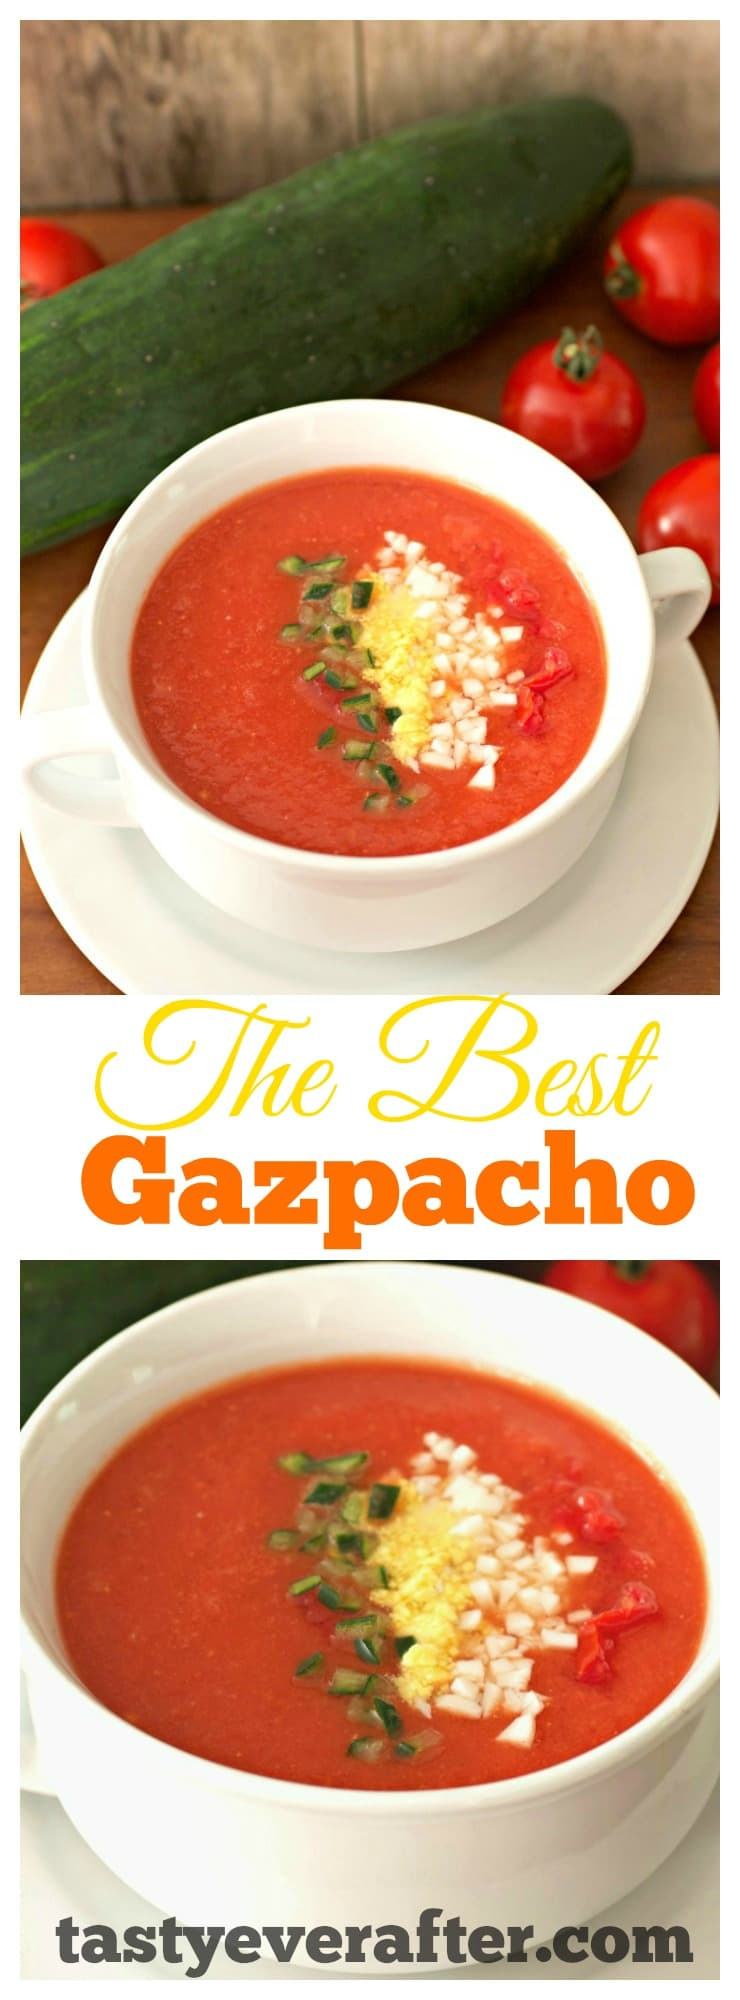 Gazpacho soup recipe Pinterest PIN